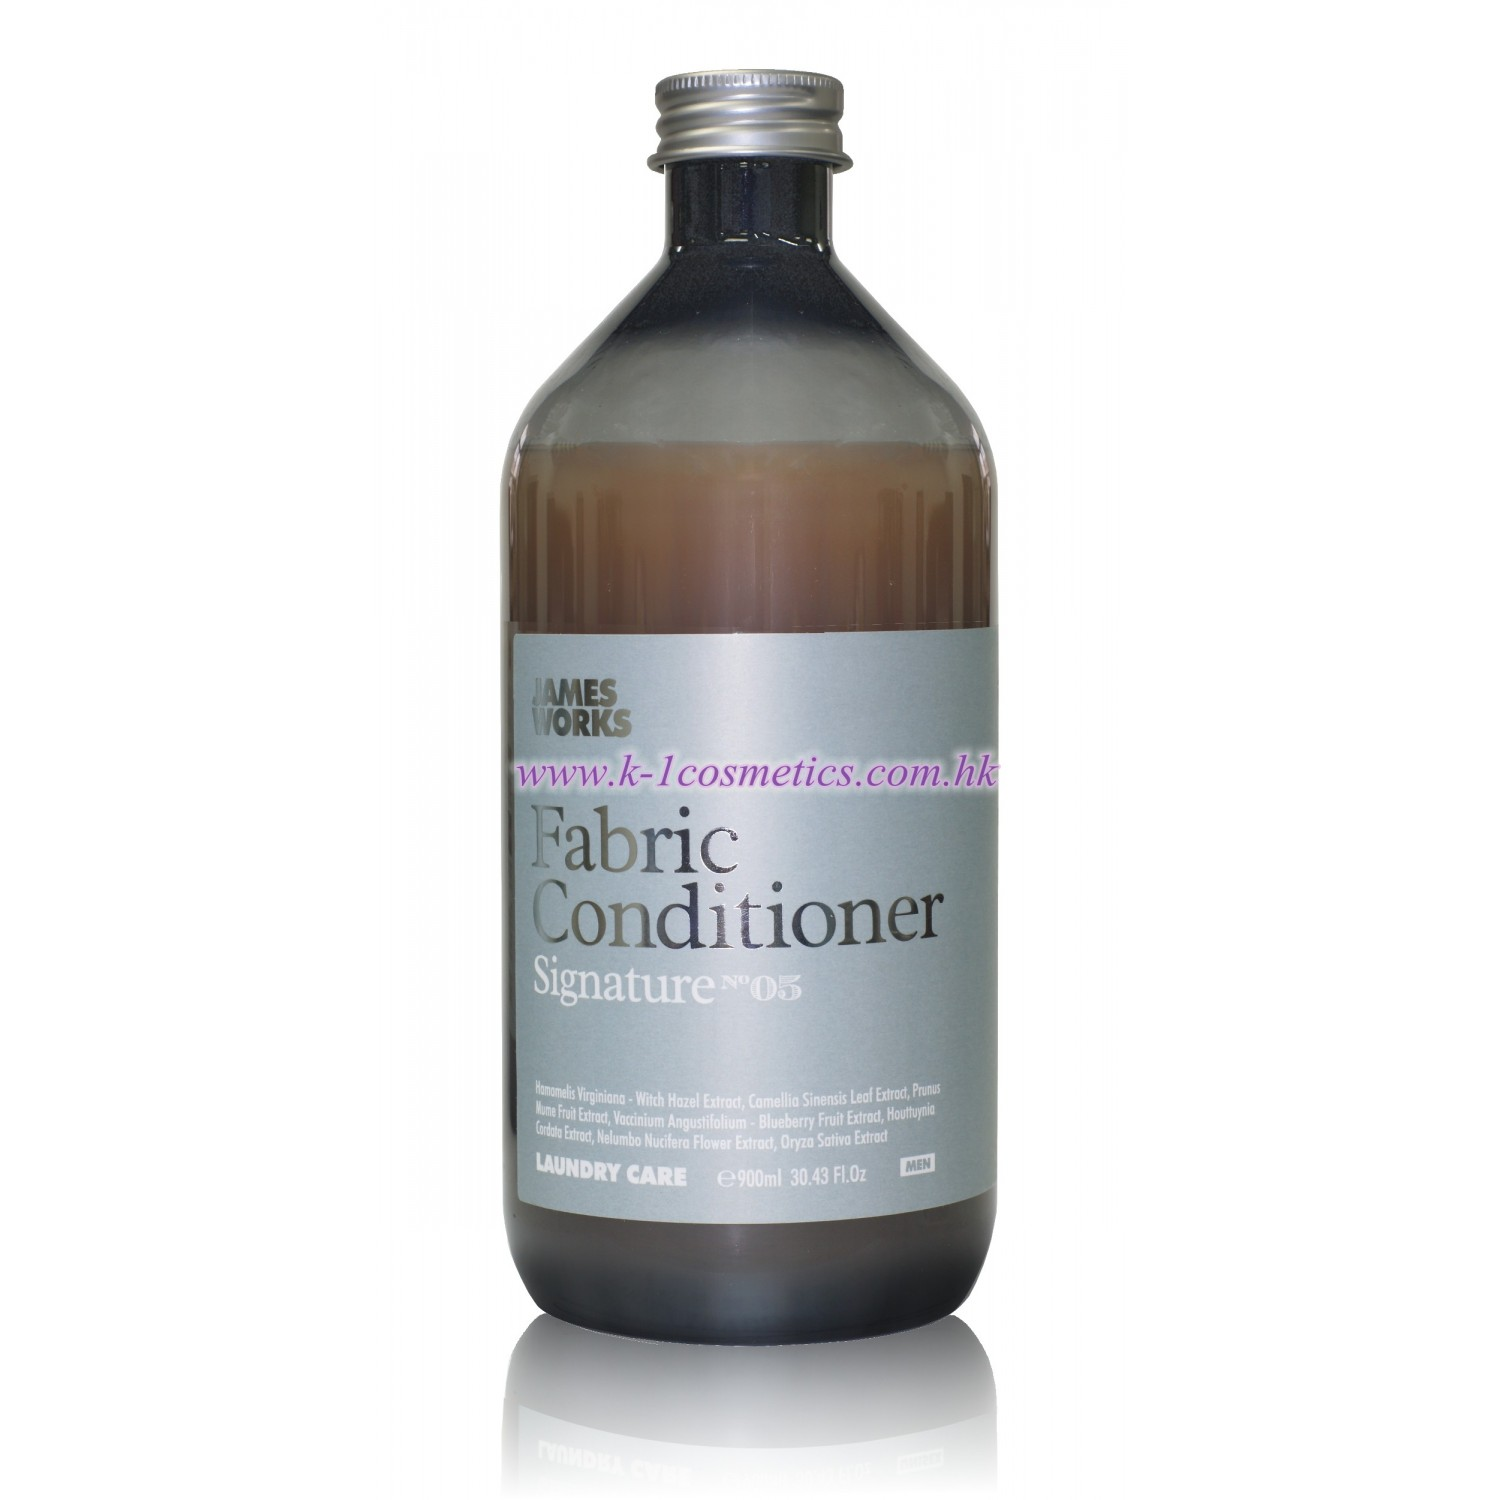 James Works 優質香水柔順劑 (No. 05 Signature) (900 ml)